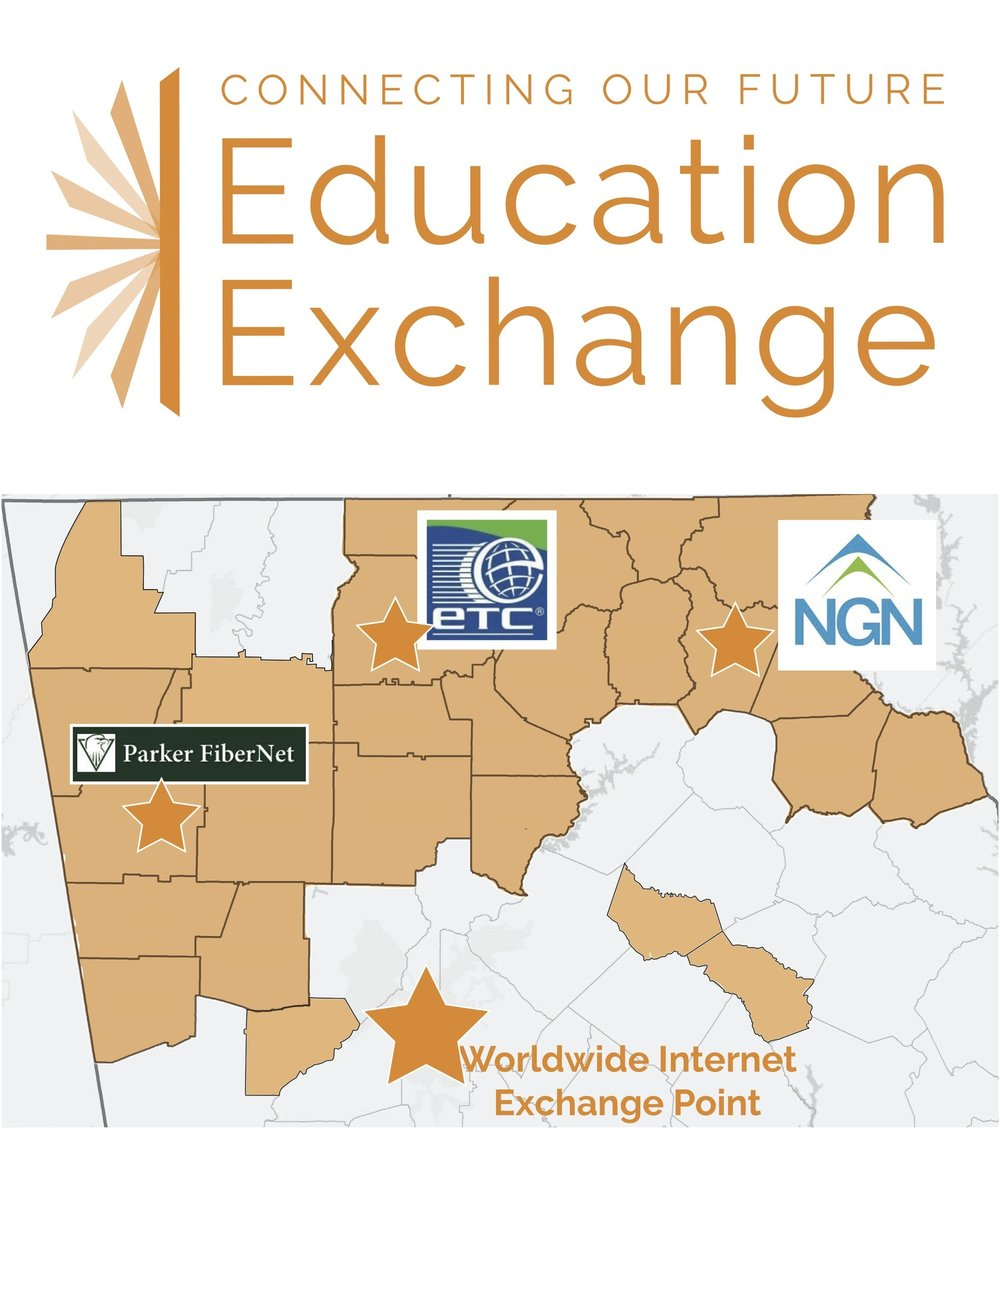 EducationExchangeMap.jpg